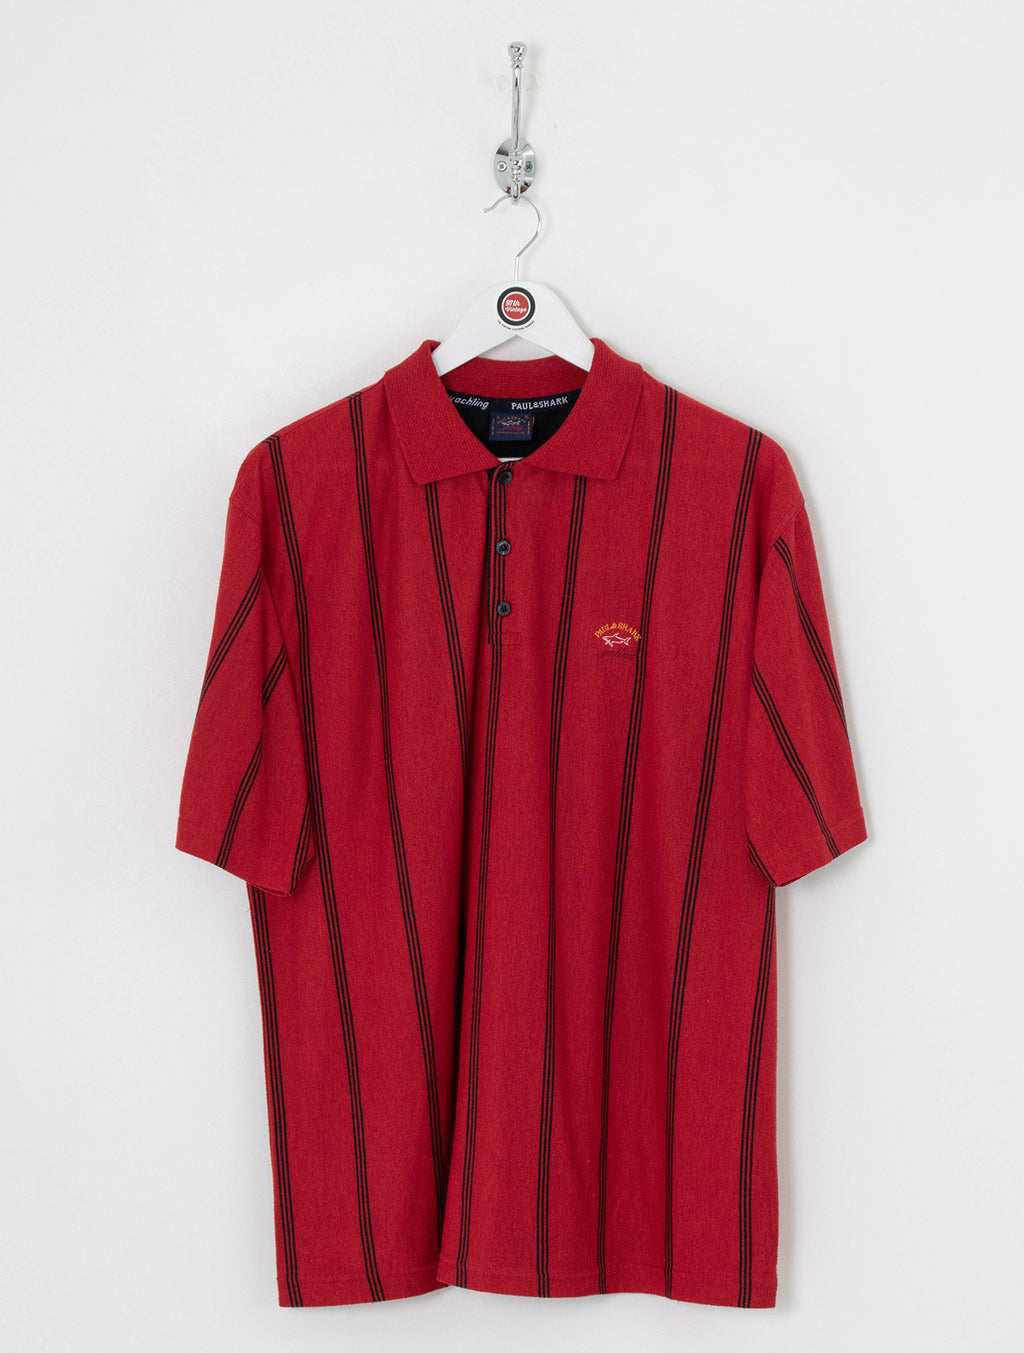 Paul & Shark Polo Shirt (XL)